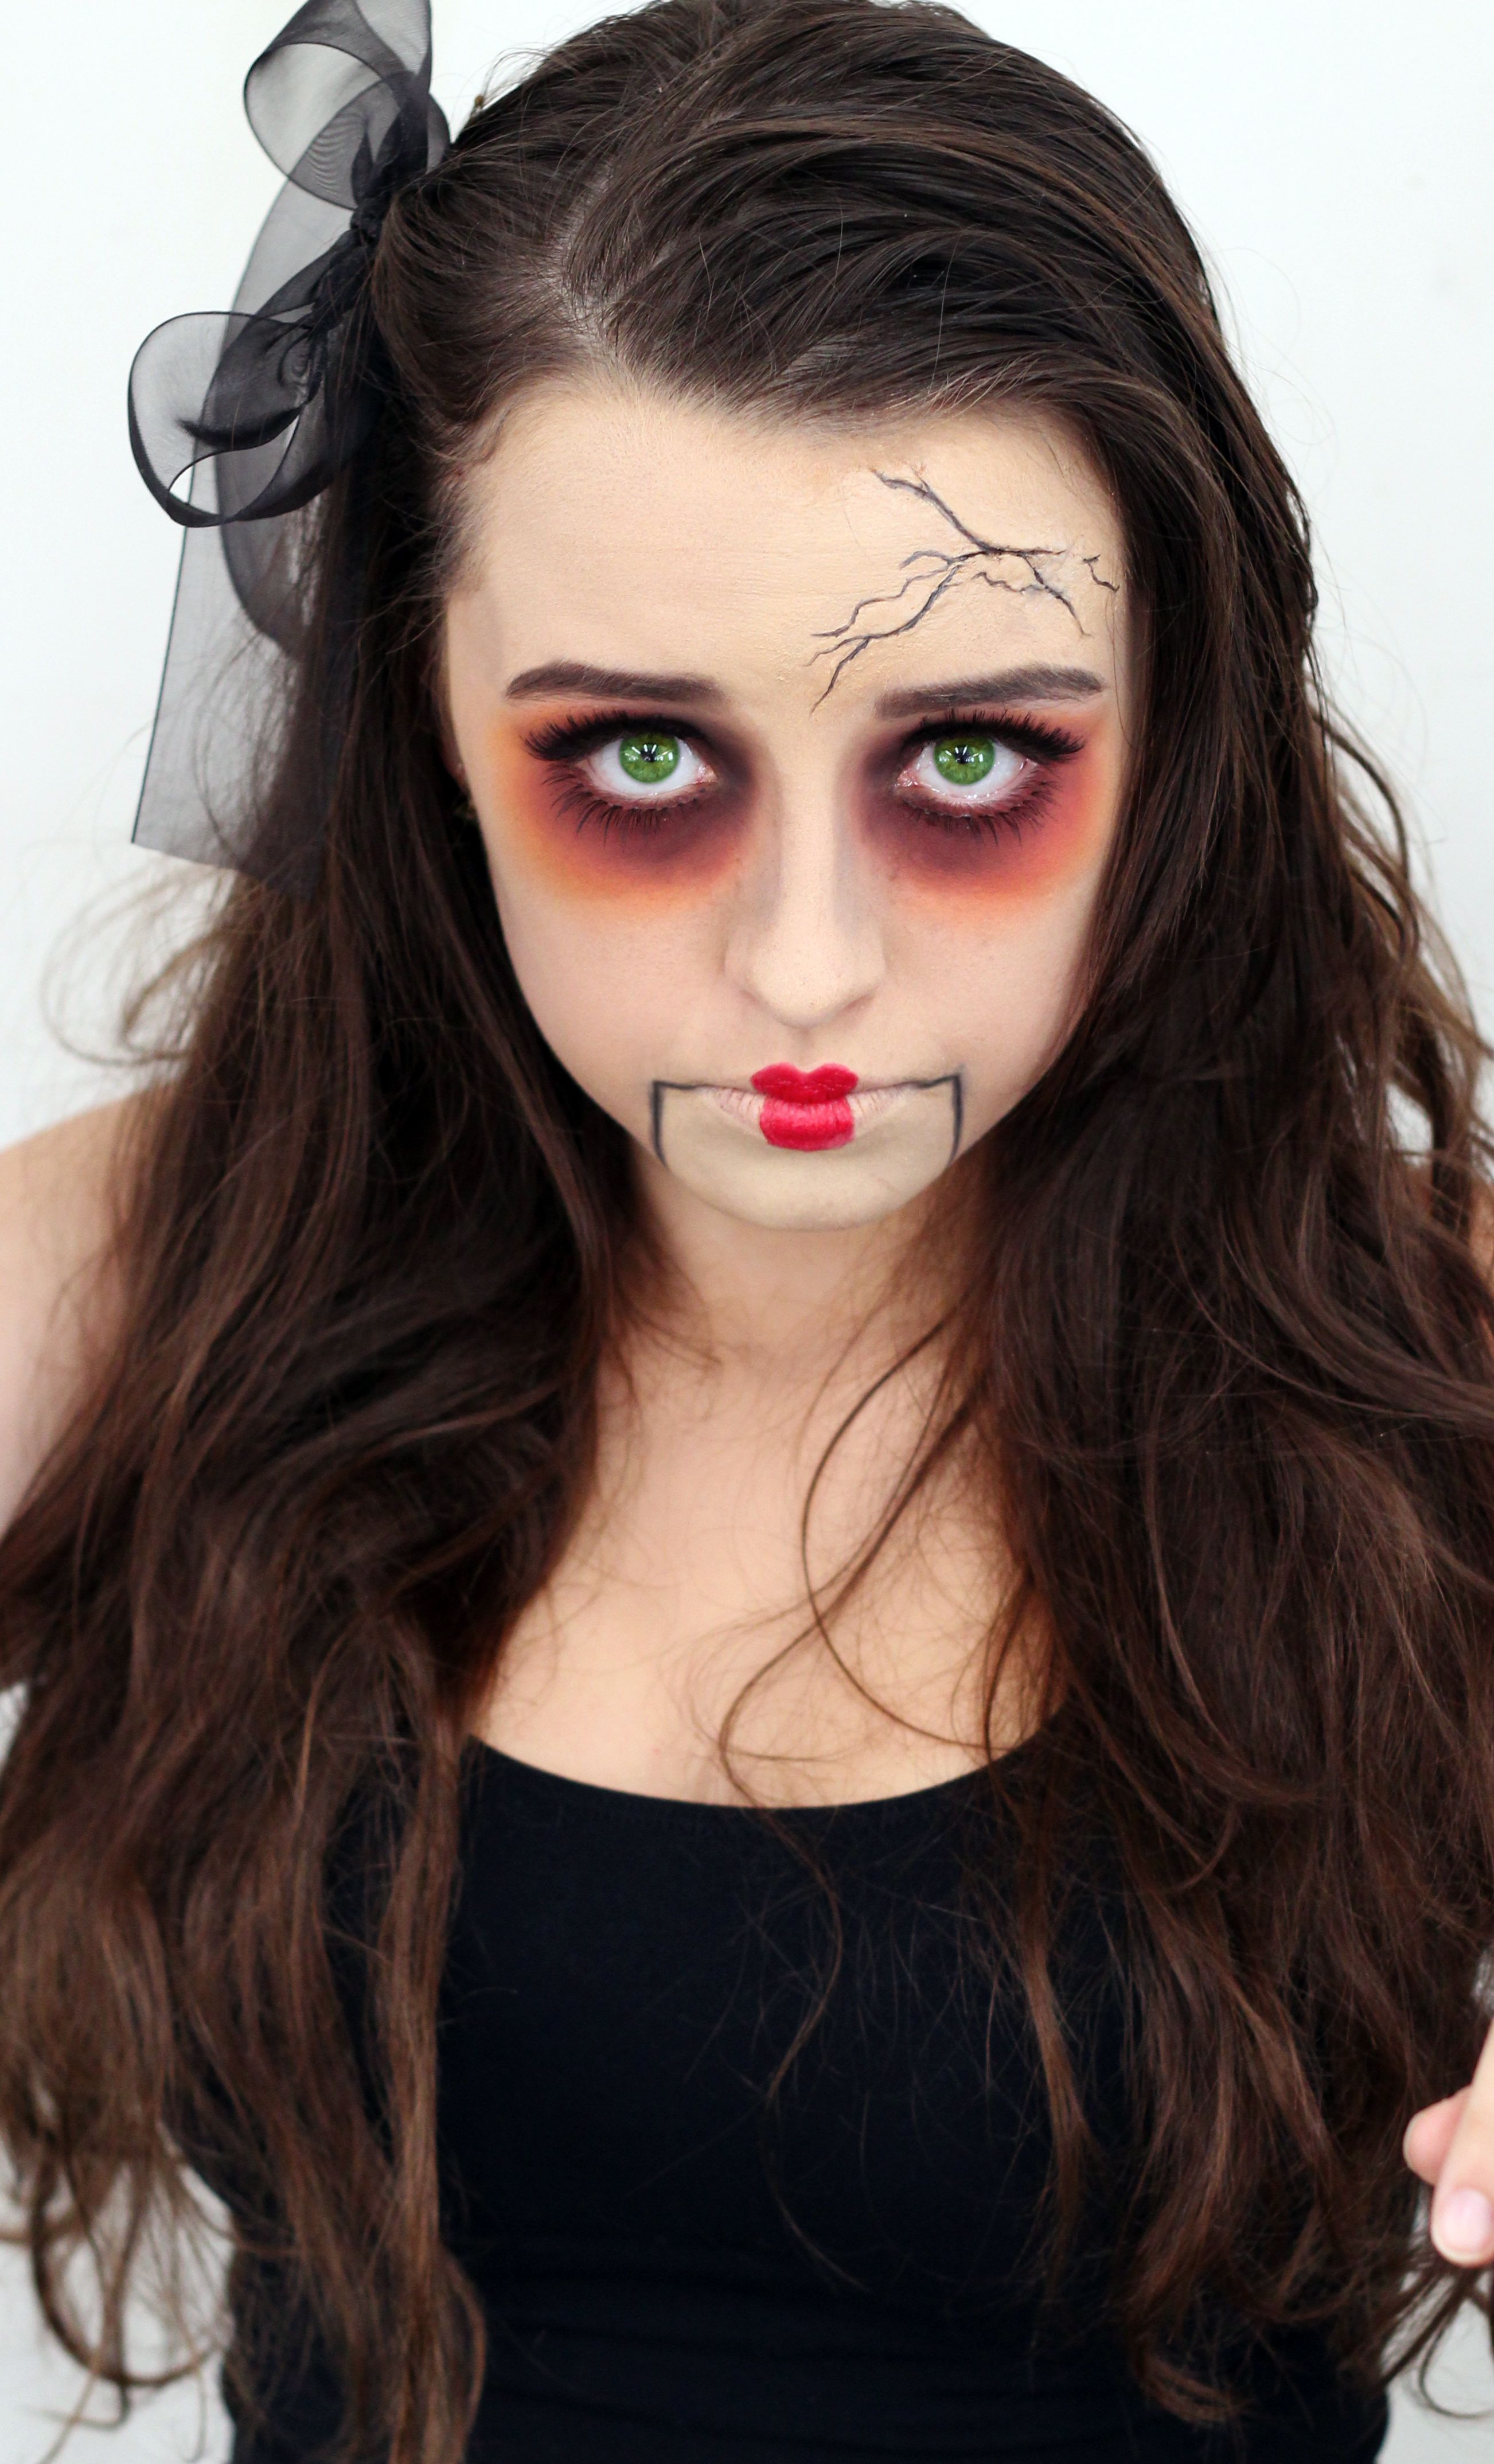 Marionette On Shauna - That is so amazing! It scares the crap out of me! c2f10fc079ffd